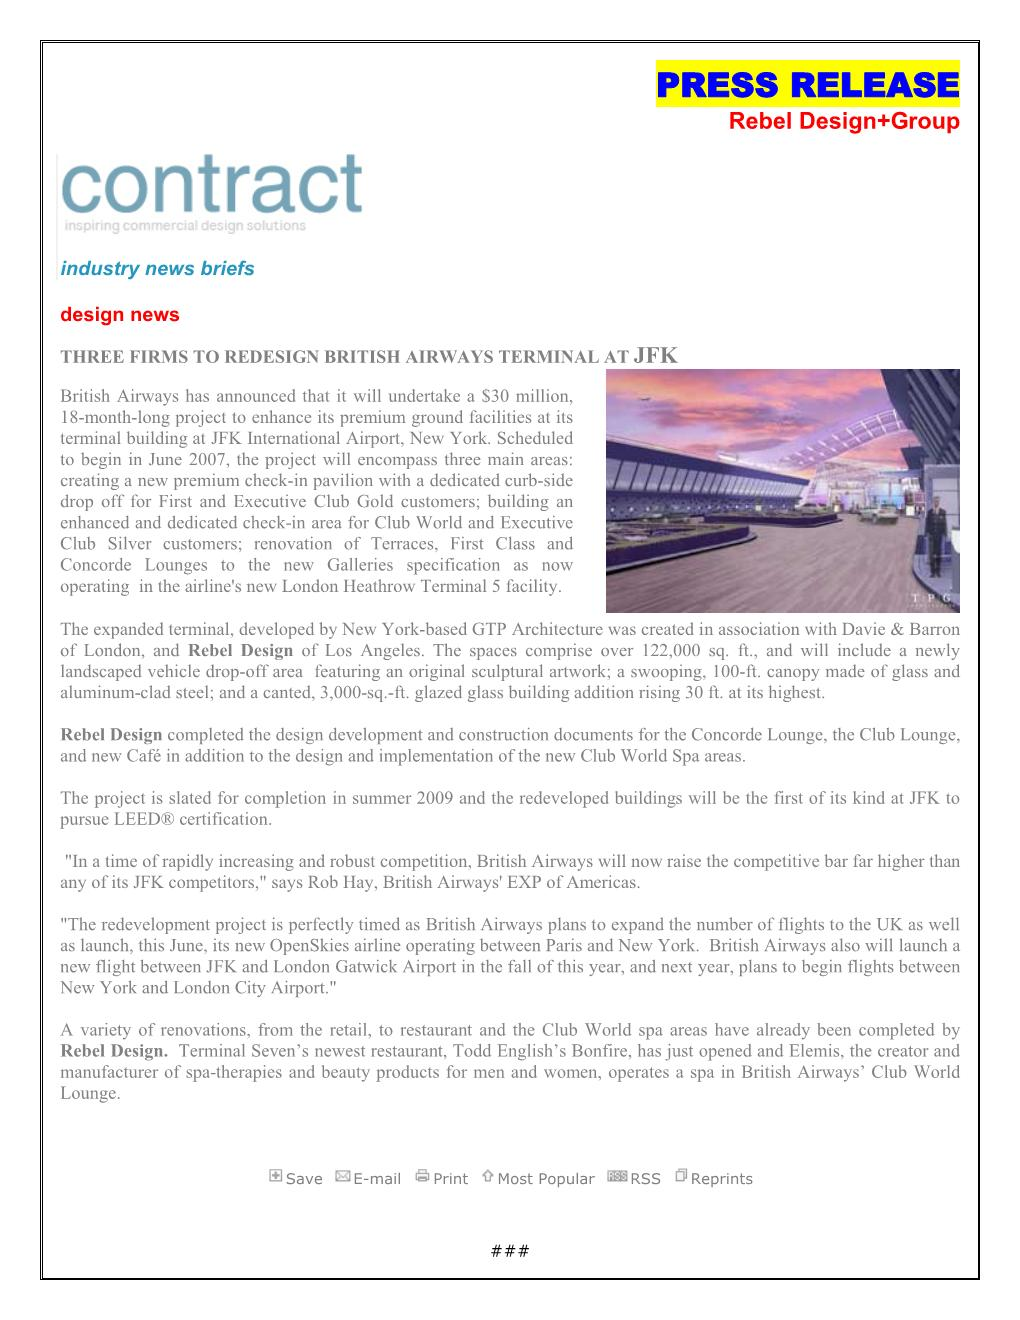 Interior Design Contract Part - 46: CONTRACT MAGAZINE /JFK Re- Rebel Design | Hotel Design | Hotel Designers |  Hotel Interior